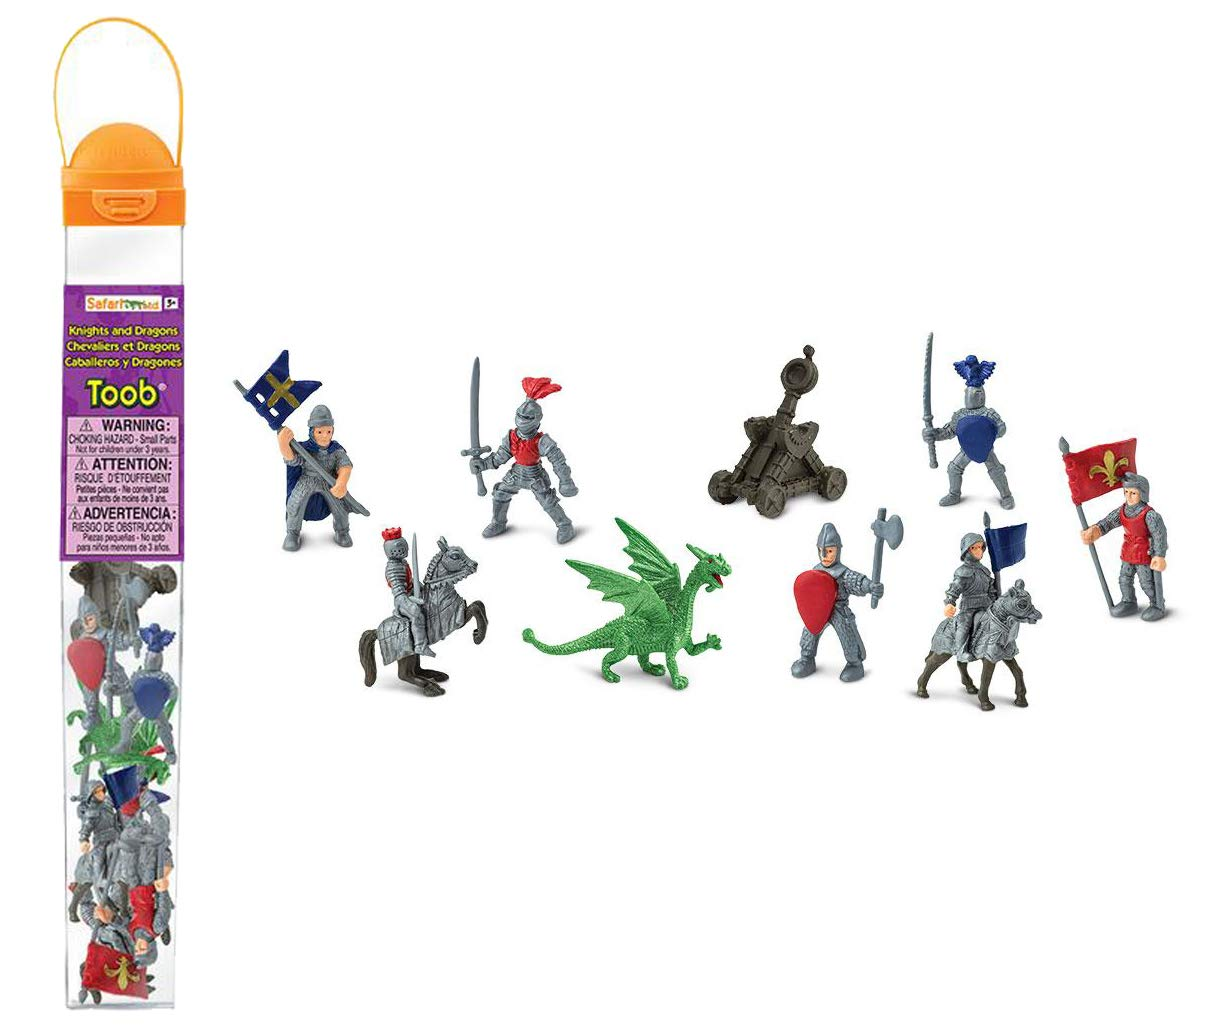 Safari Ltd 699904 Knights & Dragons Toob Hand Painted Toy Miniature Figurines (Set of 11)